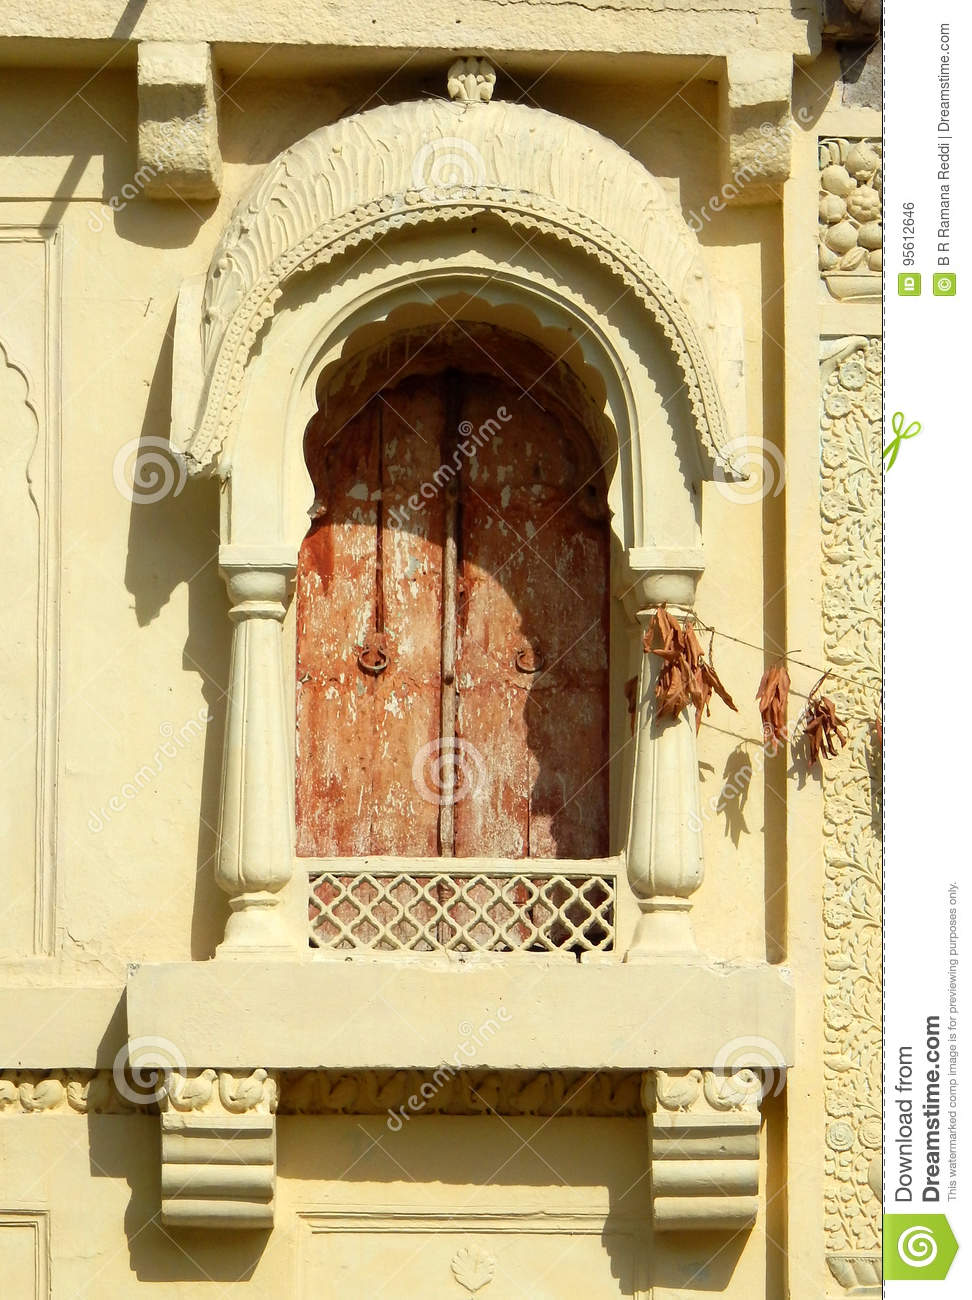 Wall Art And Windows Architecture Of 200 Year Old Temple Stock Photo ...